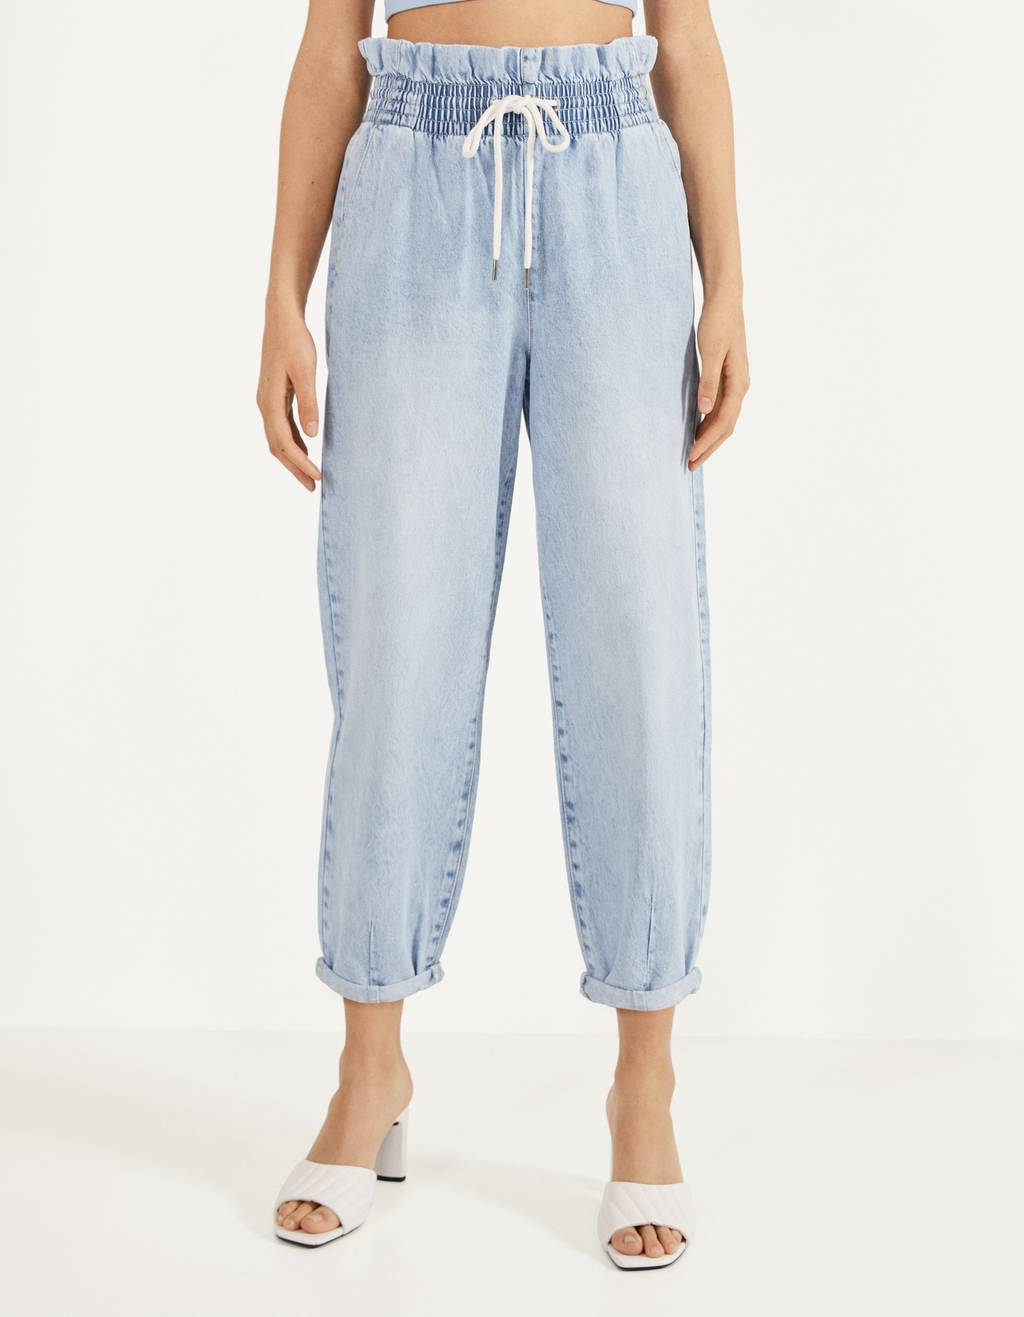 Balloon Fit jeans with an elastic waistband